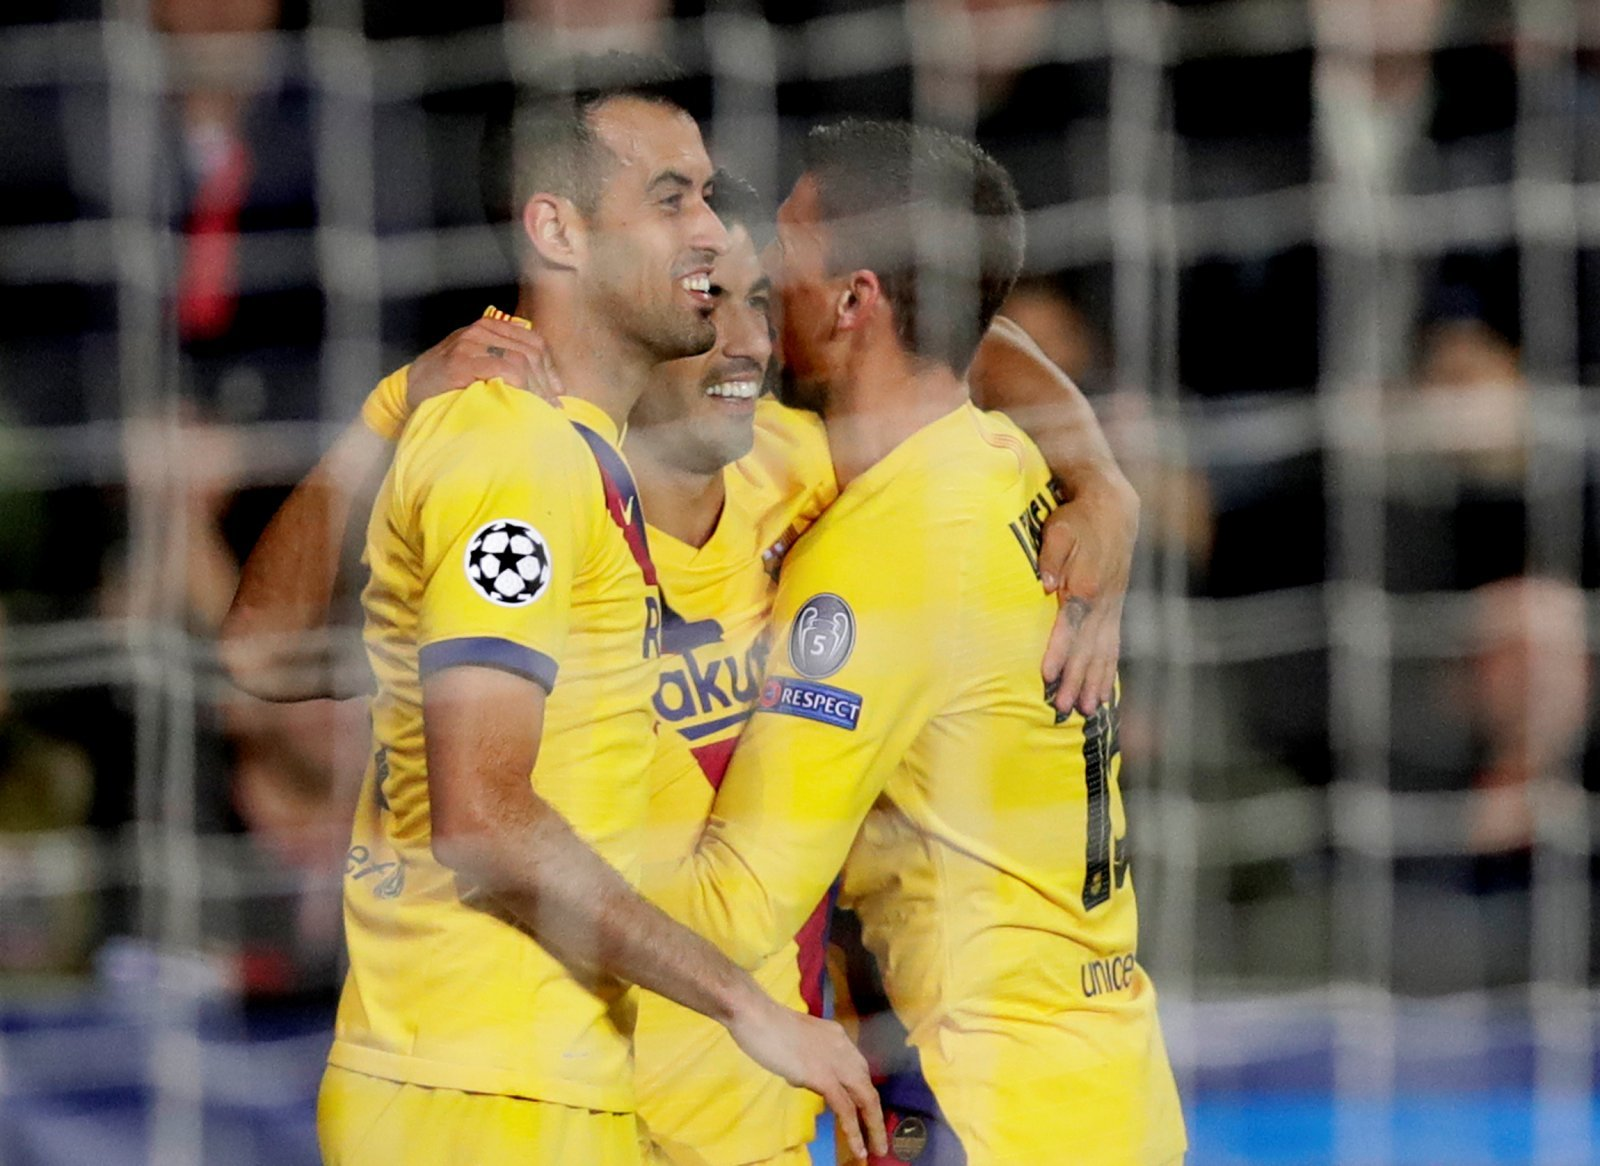 Barcelona: Fans think Sergio Busquets is finished after Slavia Prague performance